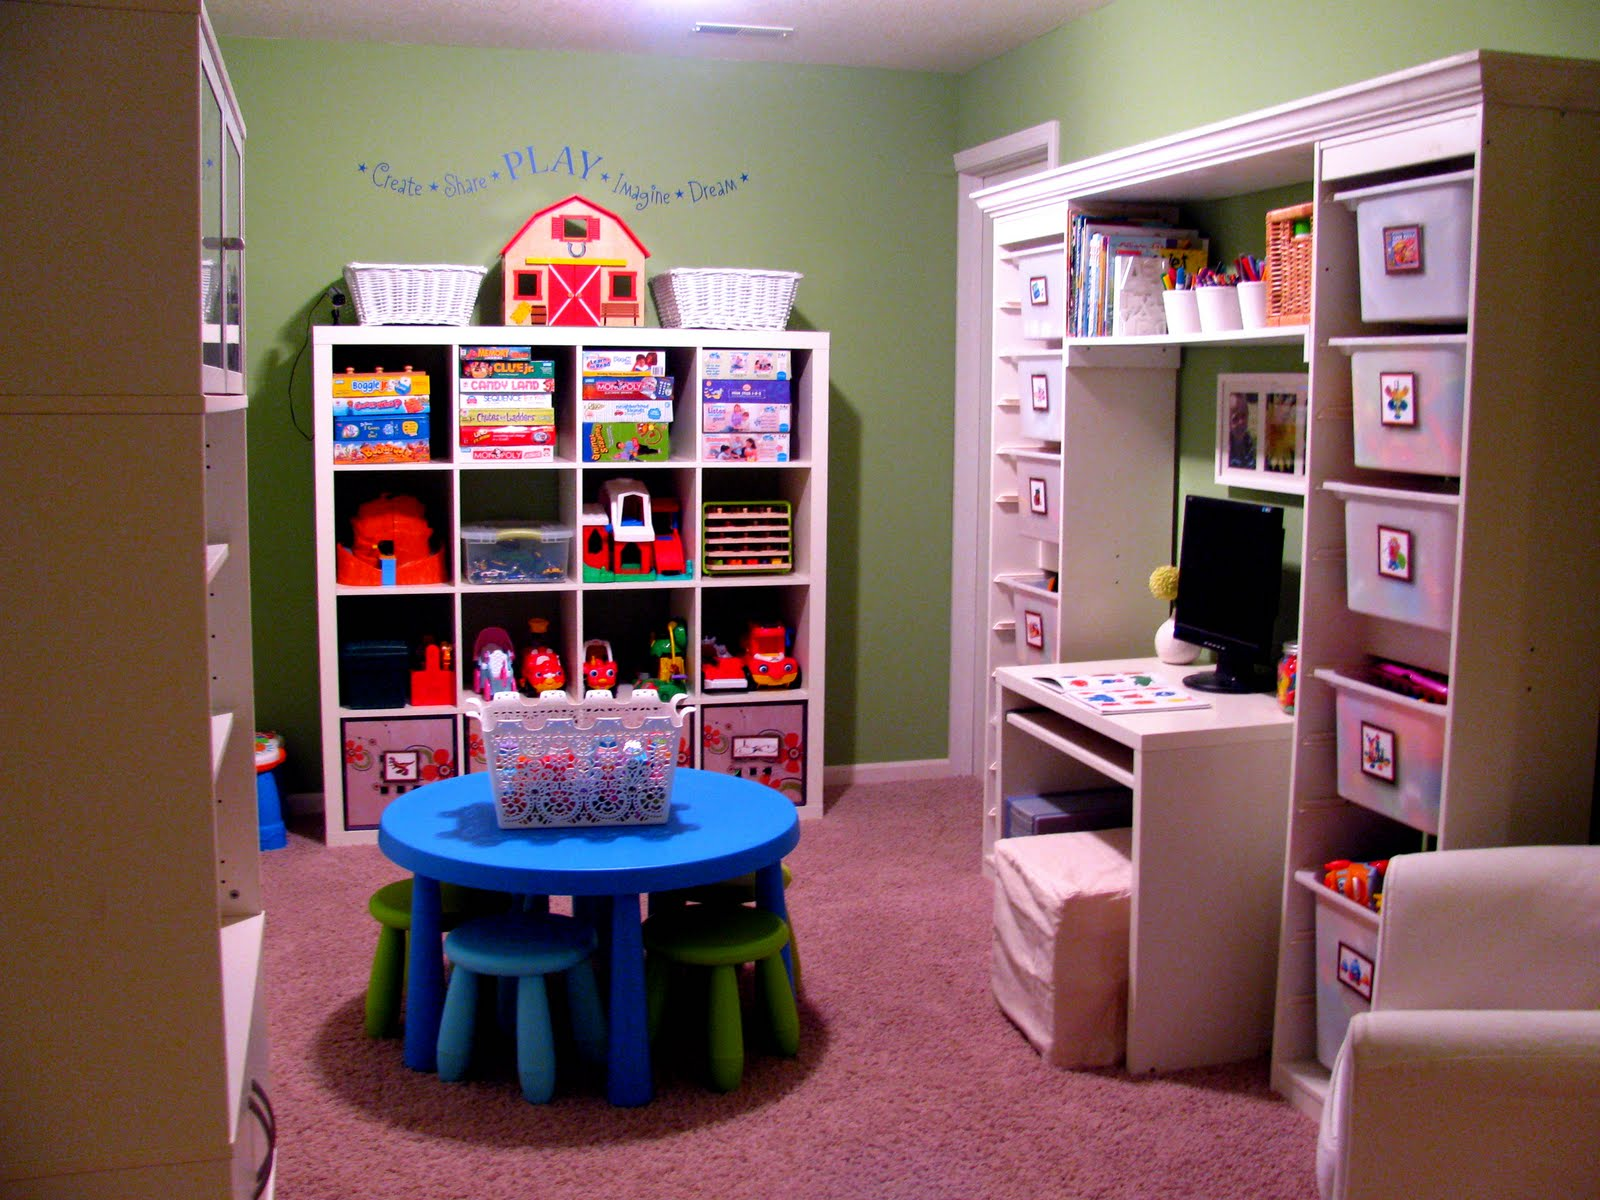 Iheart organizing reader space toy tastic Small room organization